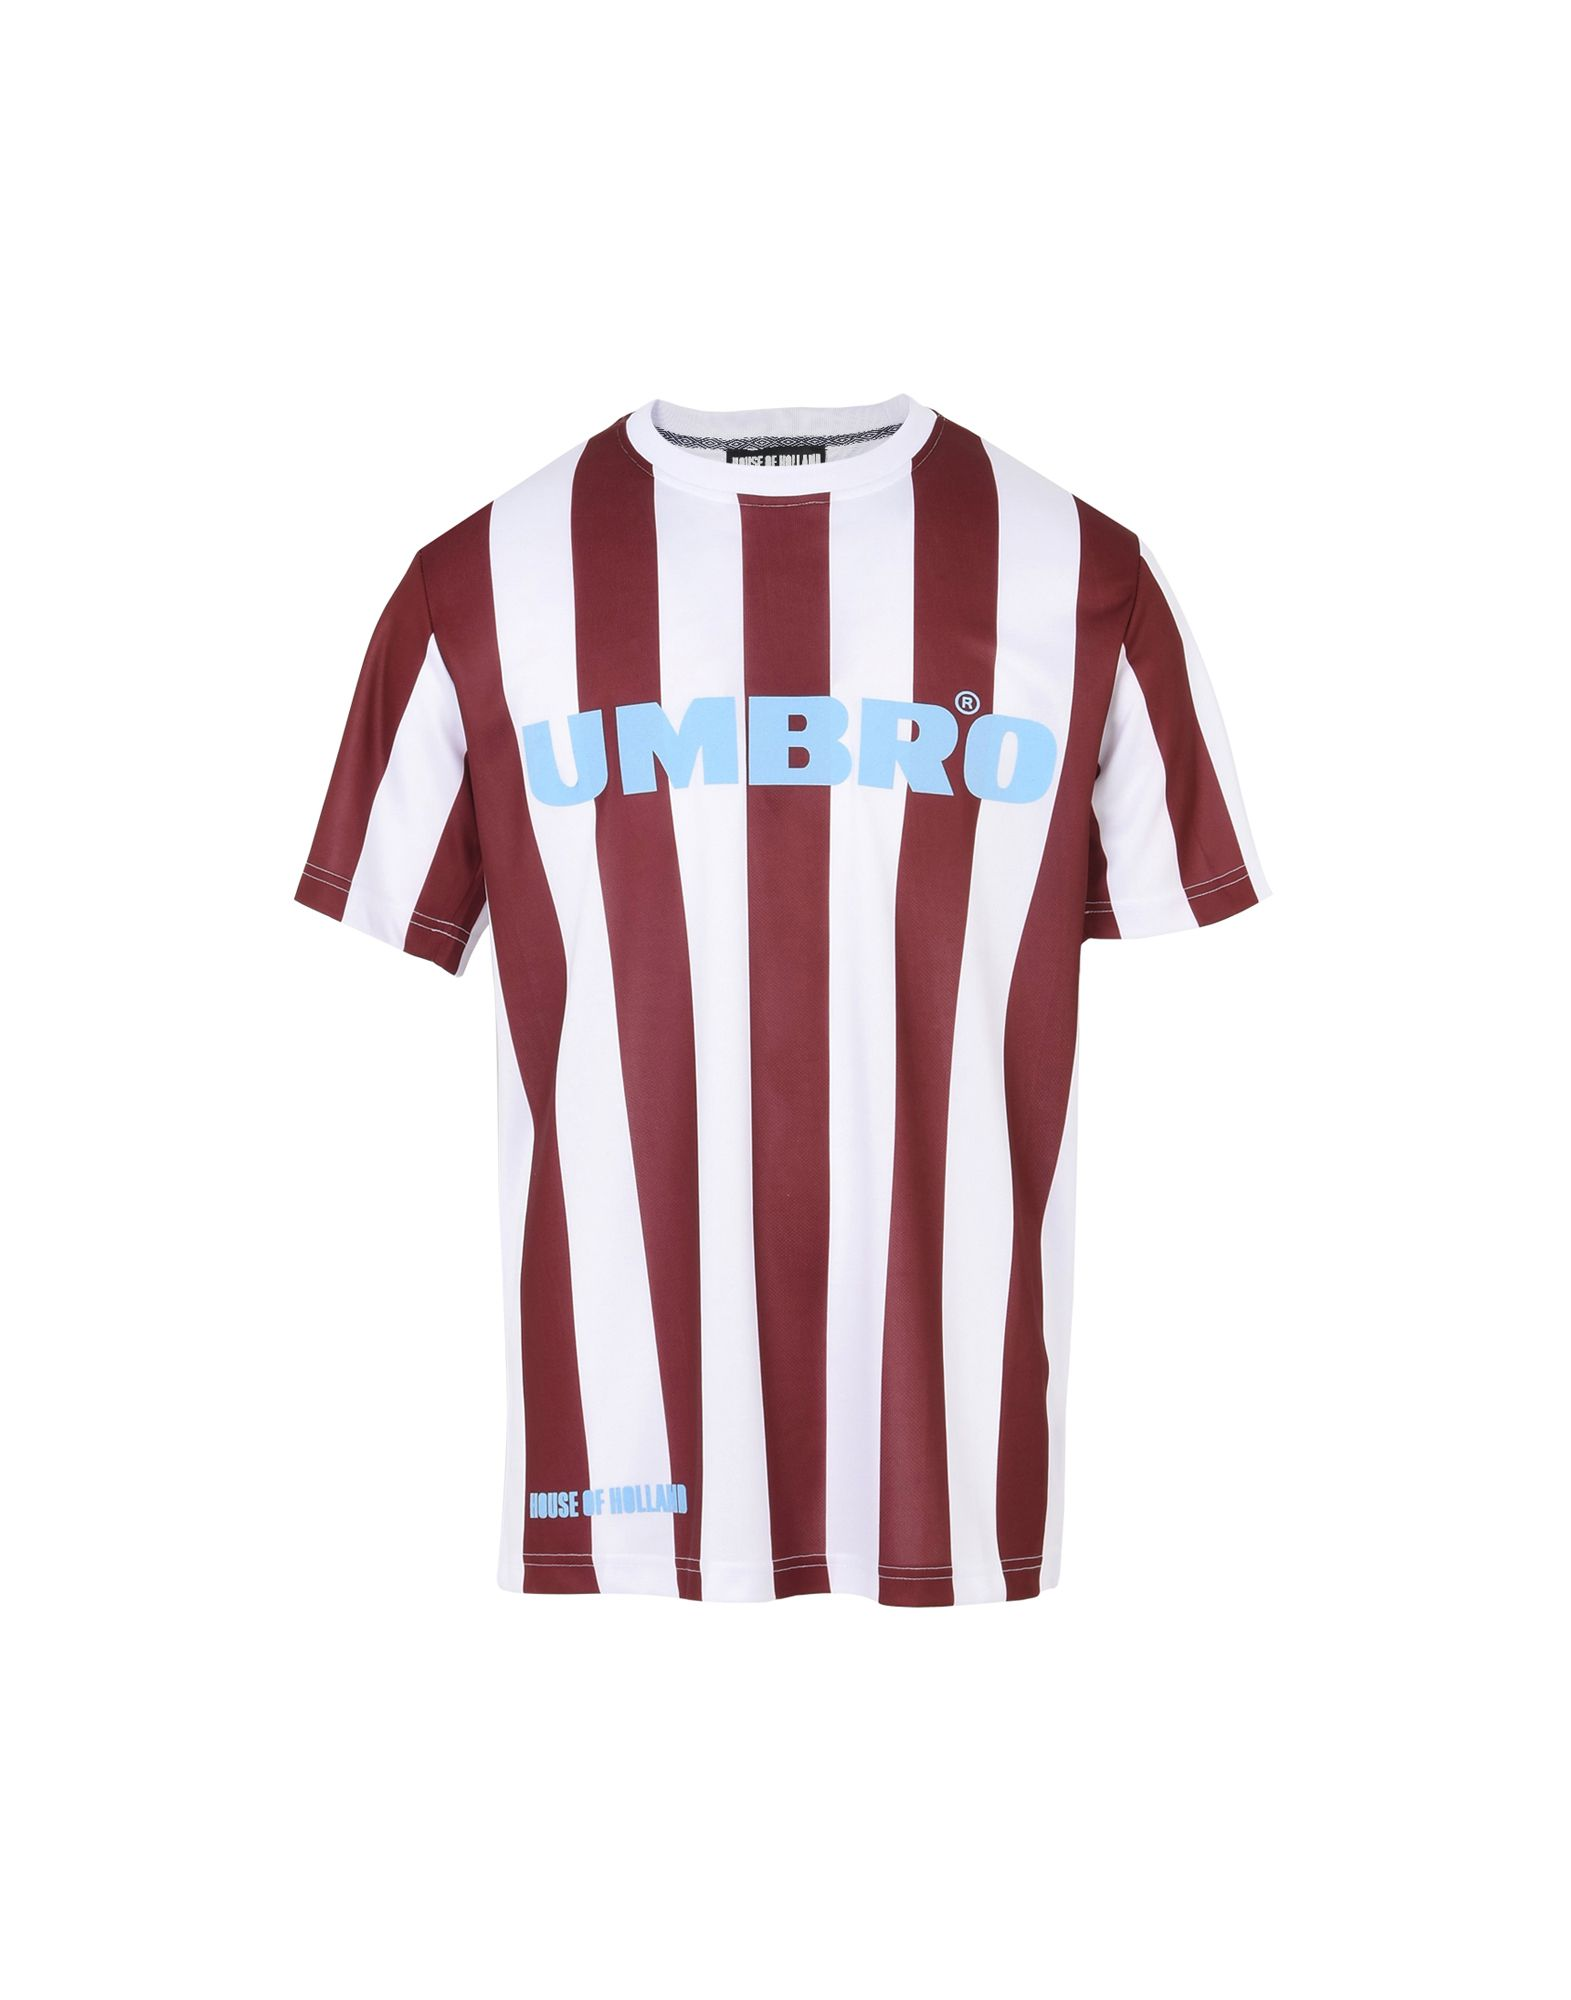 UMBRO x HOUSE OF HOL...